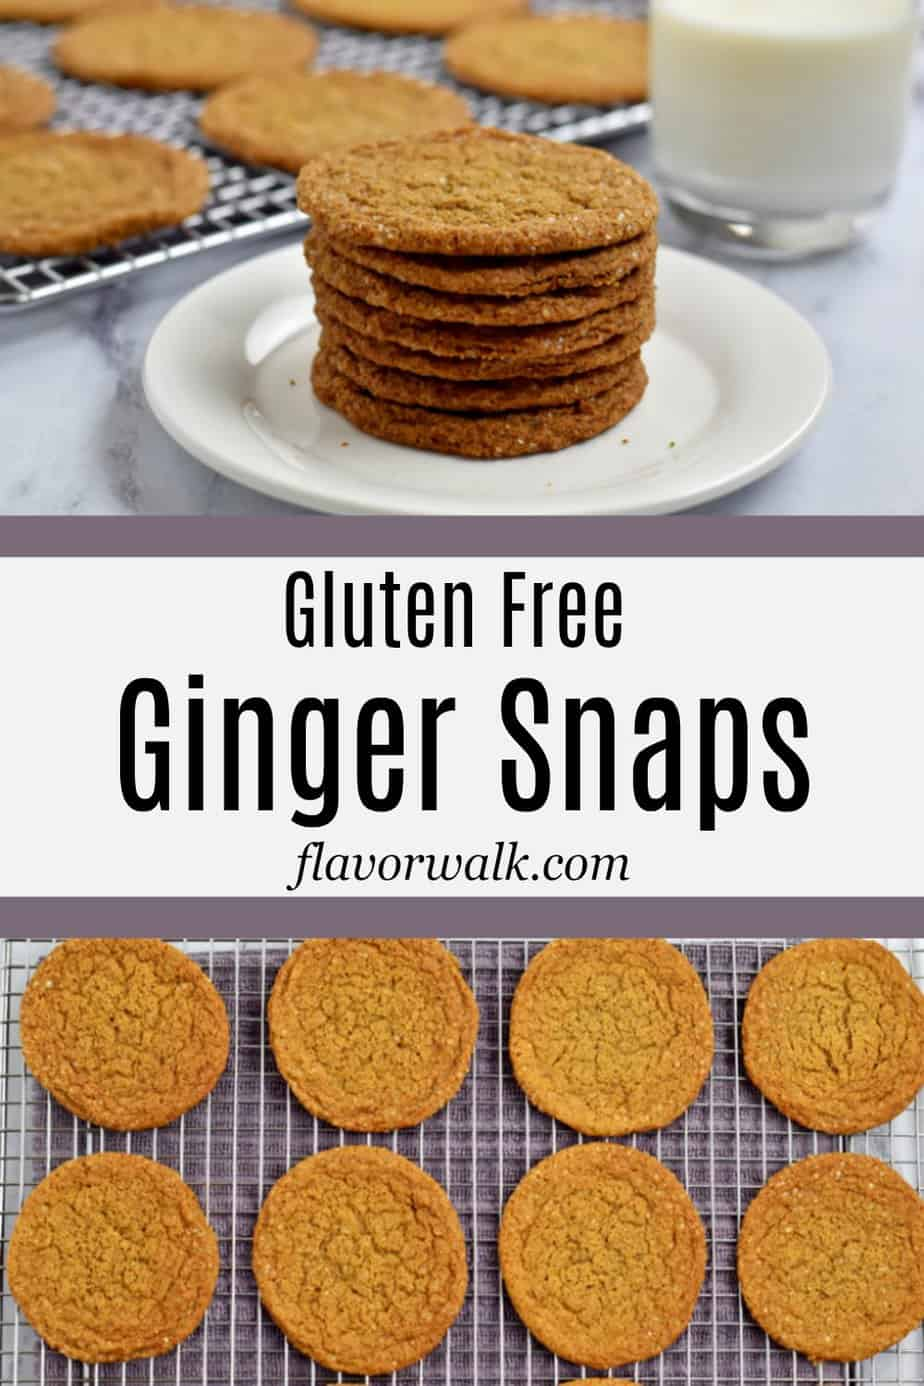 These Gluten Free Ginger Snaps are crisp around the edges, soft and chewy in the middle, and filled with bold flavor. They are the perfect cookie any time of year!